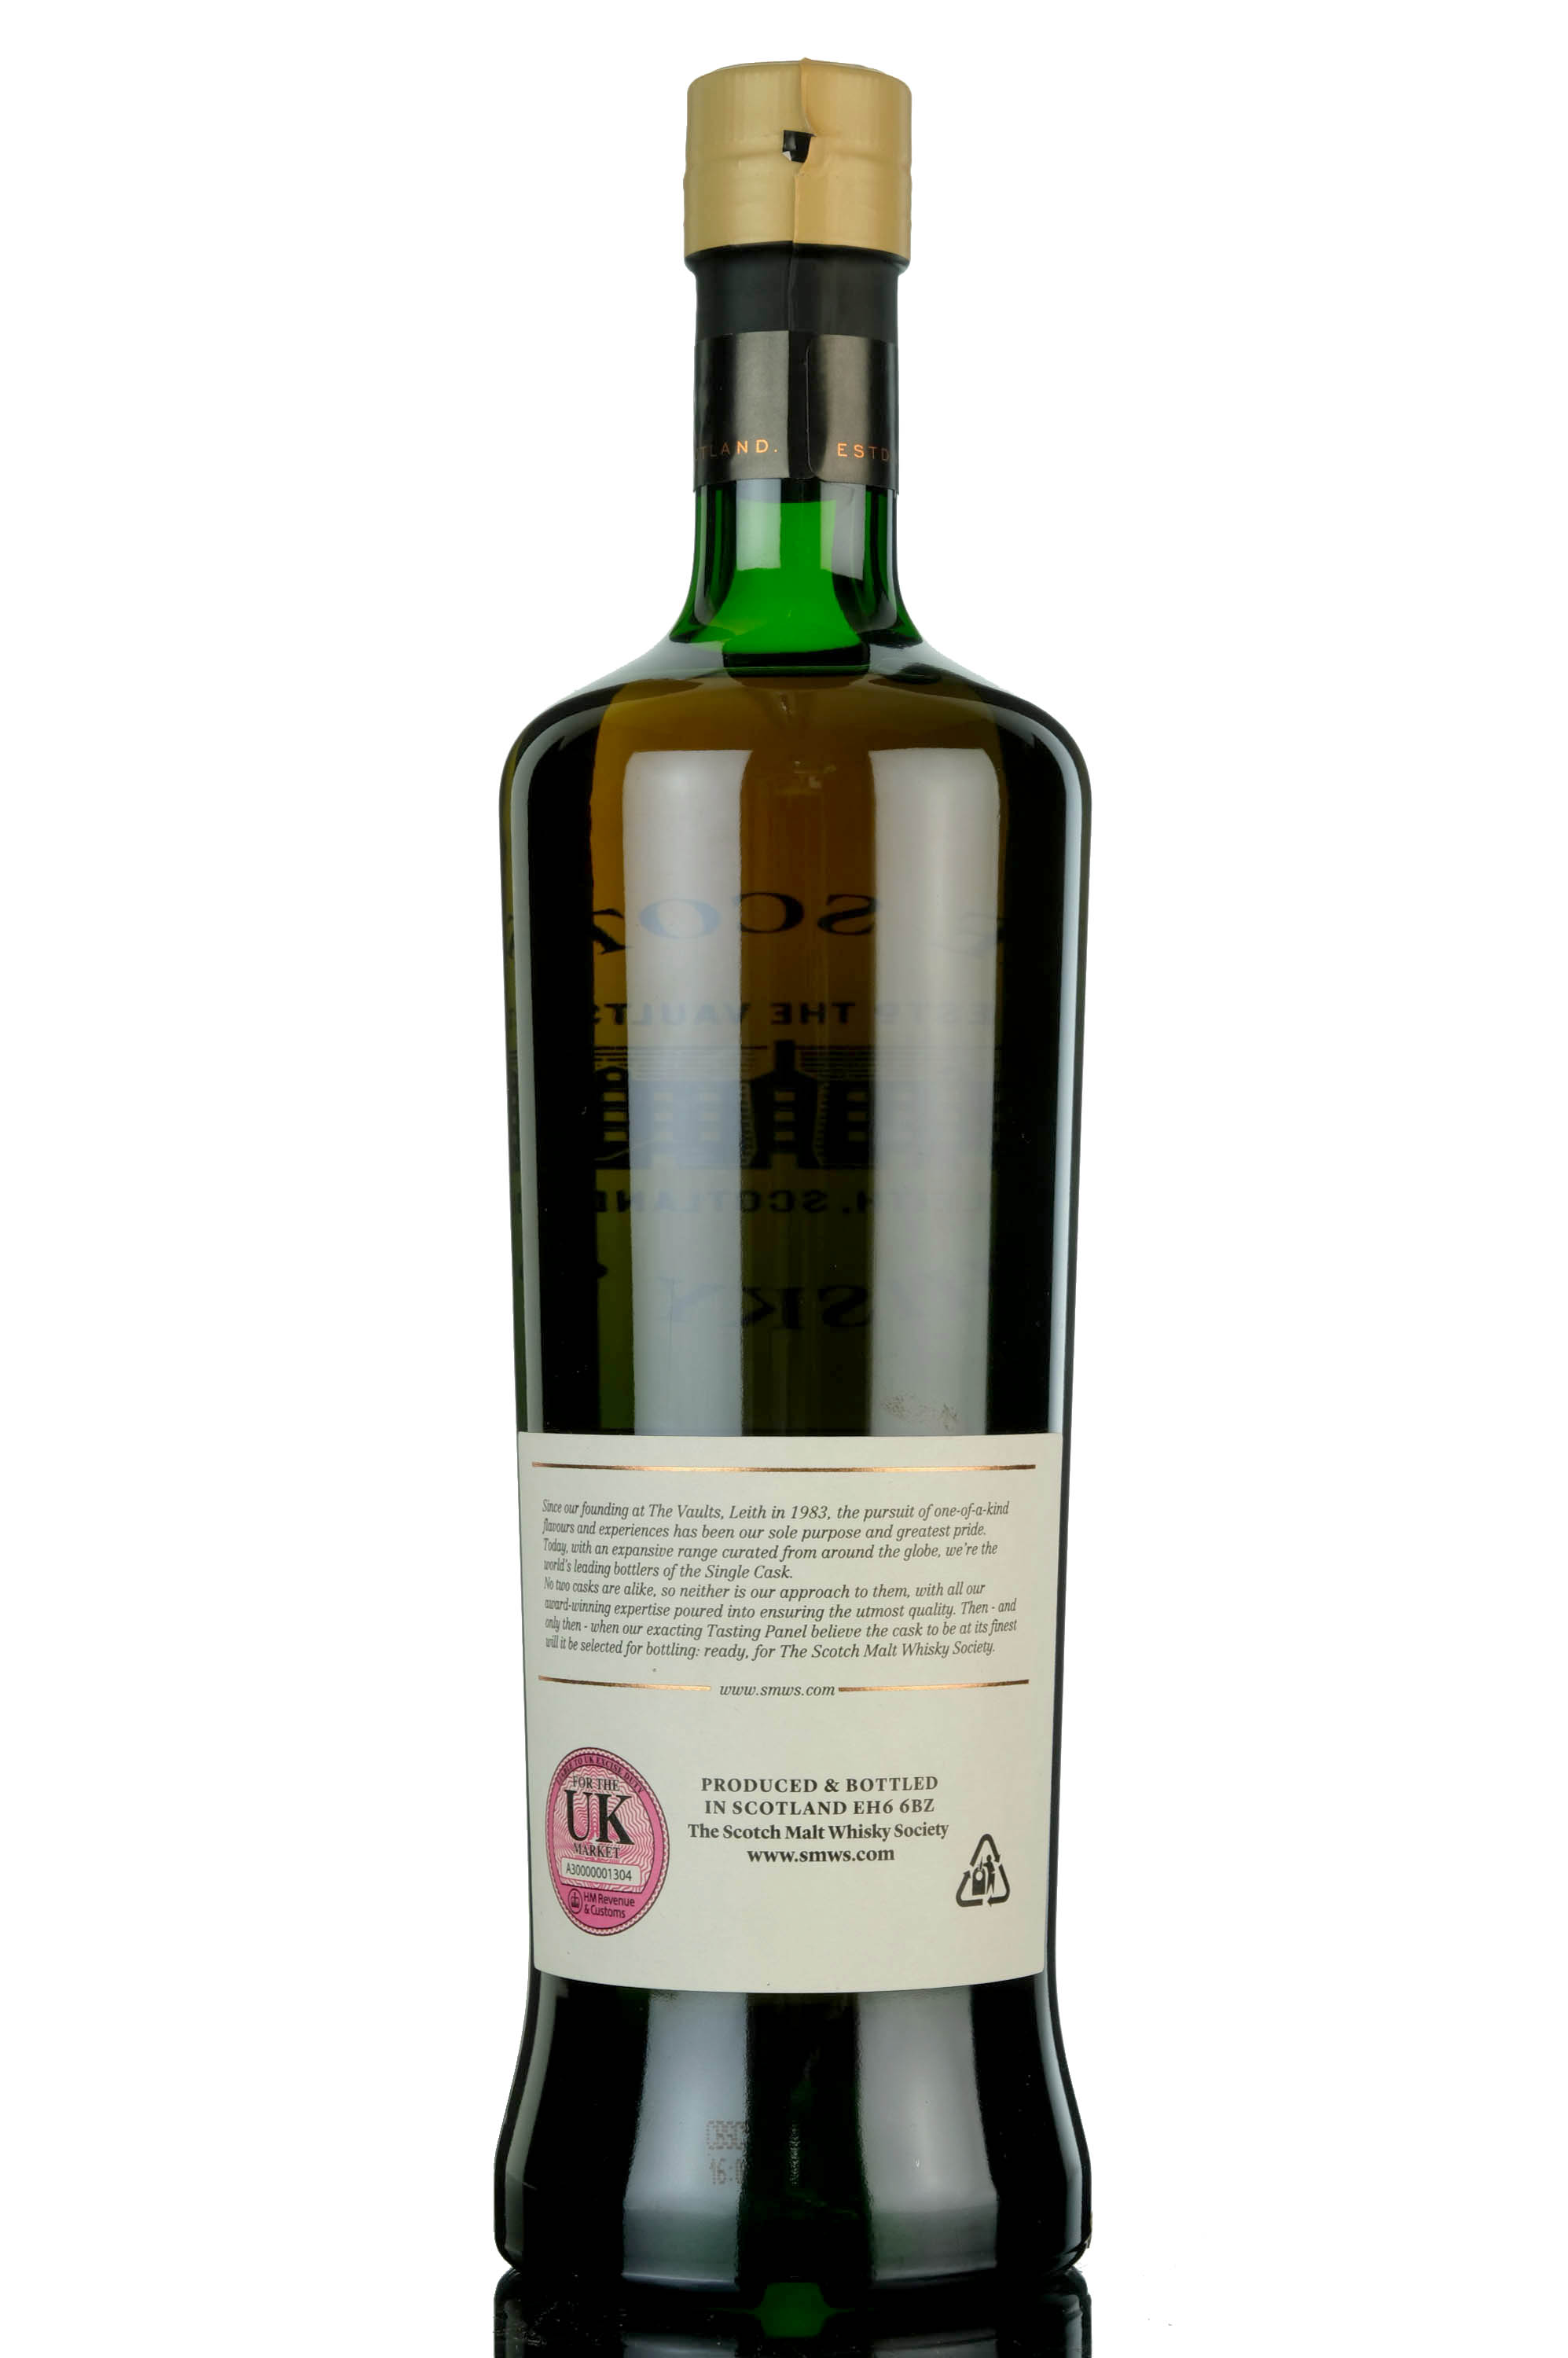 glenfarclas 1997 - 21 year old - smws 1.208 - long conversations by the crackling log fire